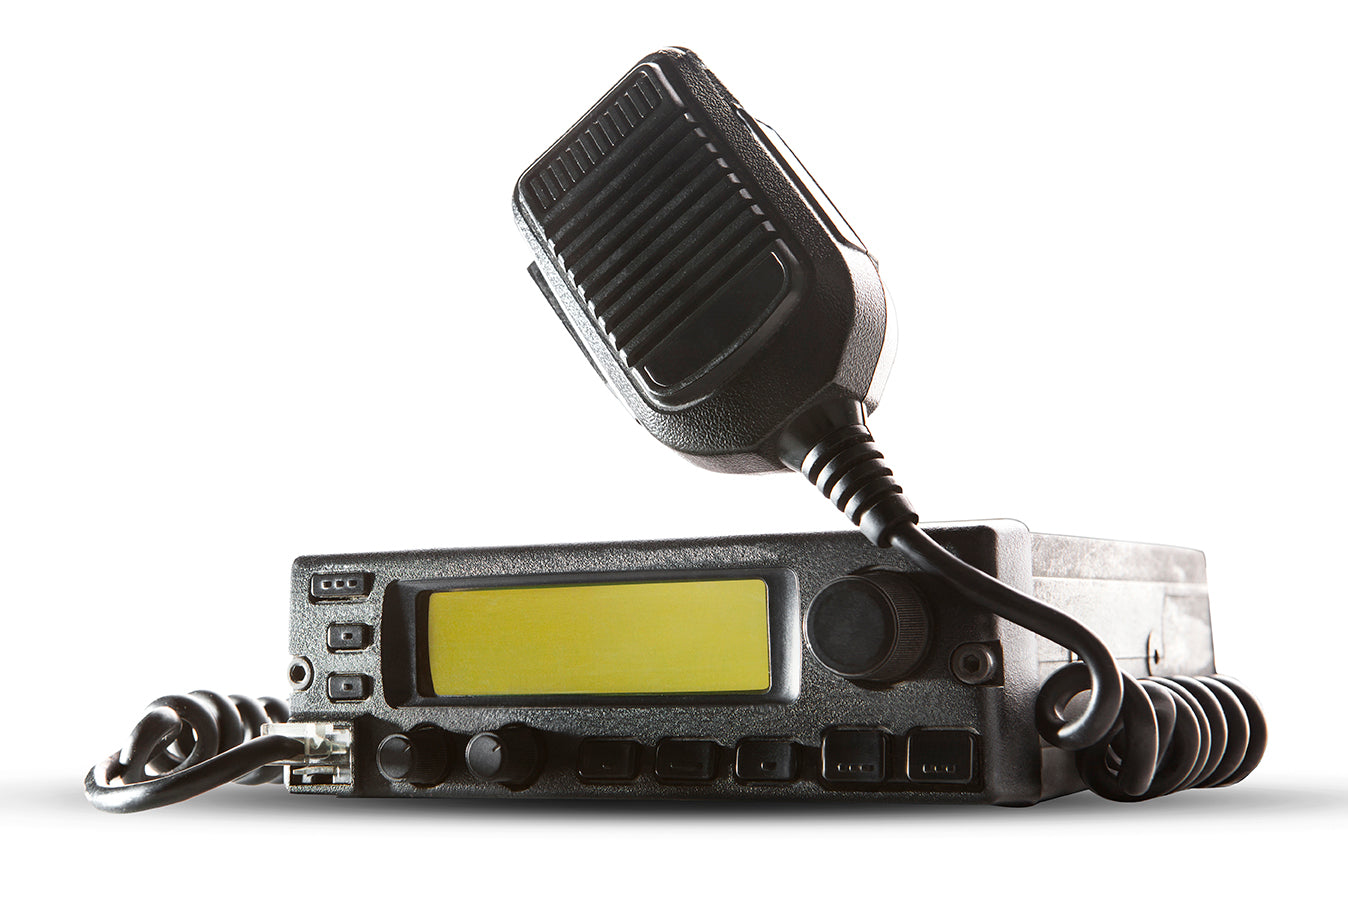 CB Radio Warranties – What to Look For